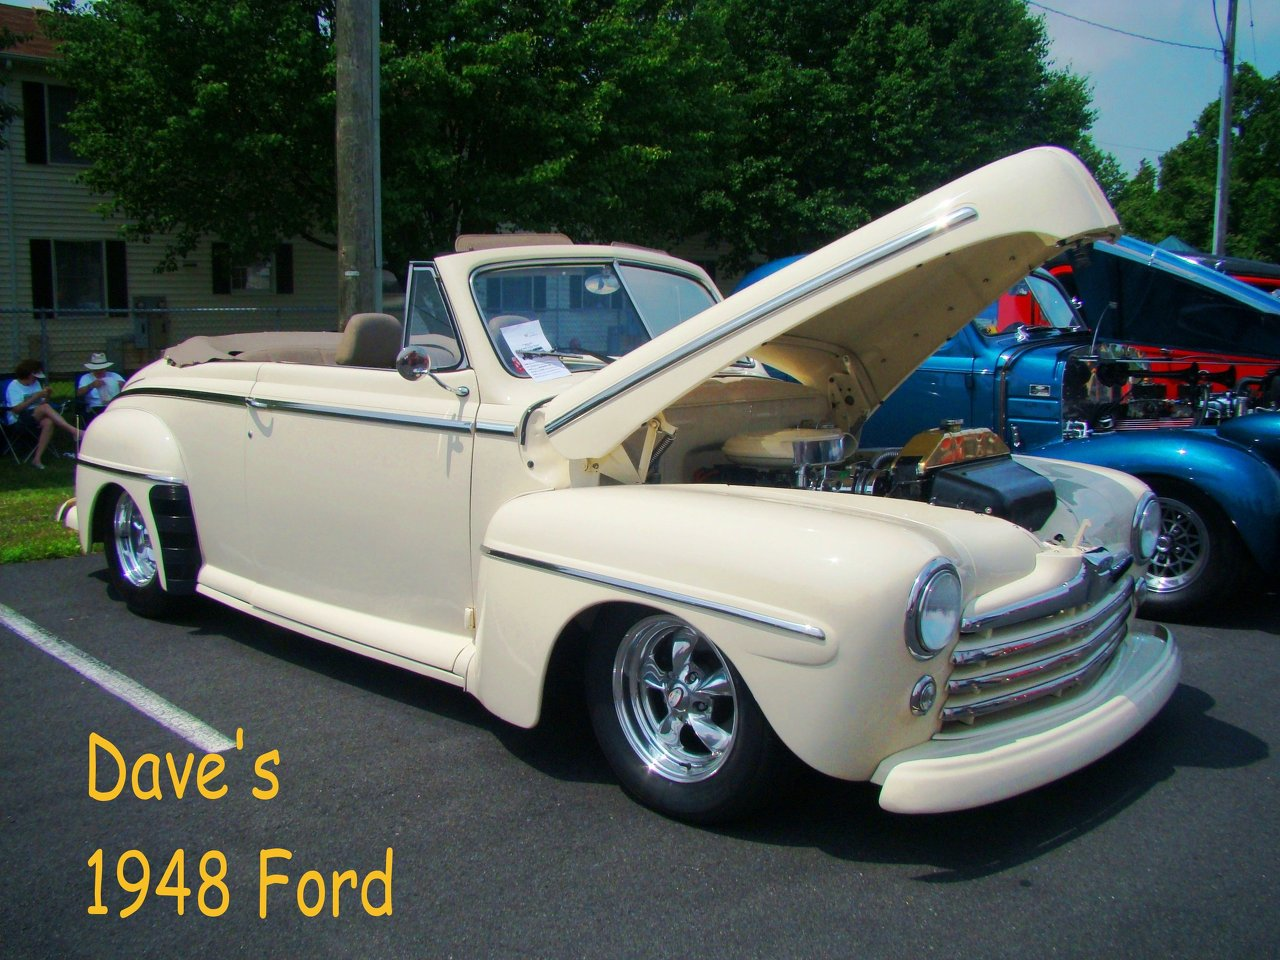 Daves 1948 Ford.jpg